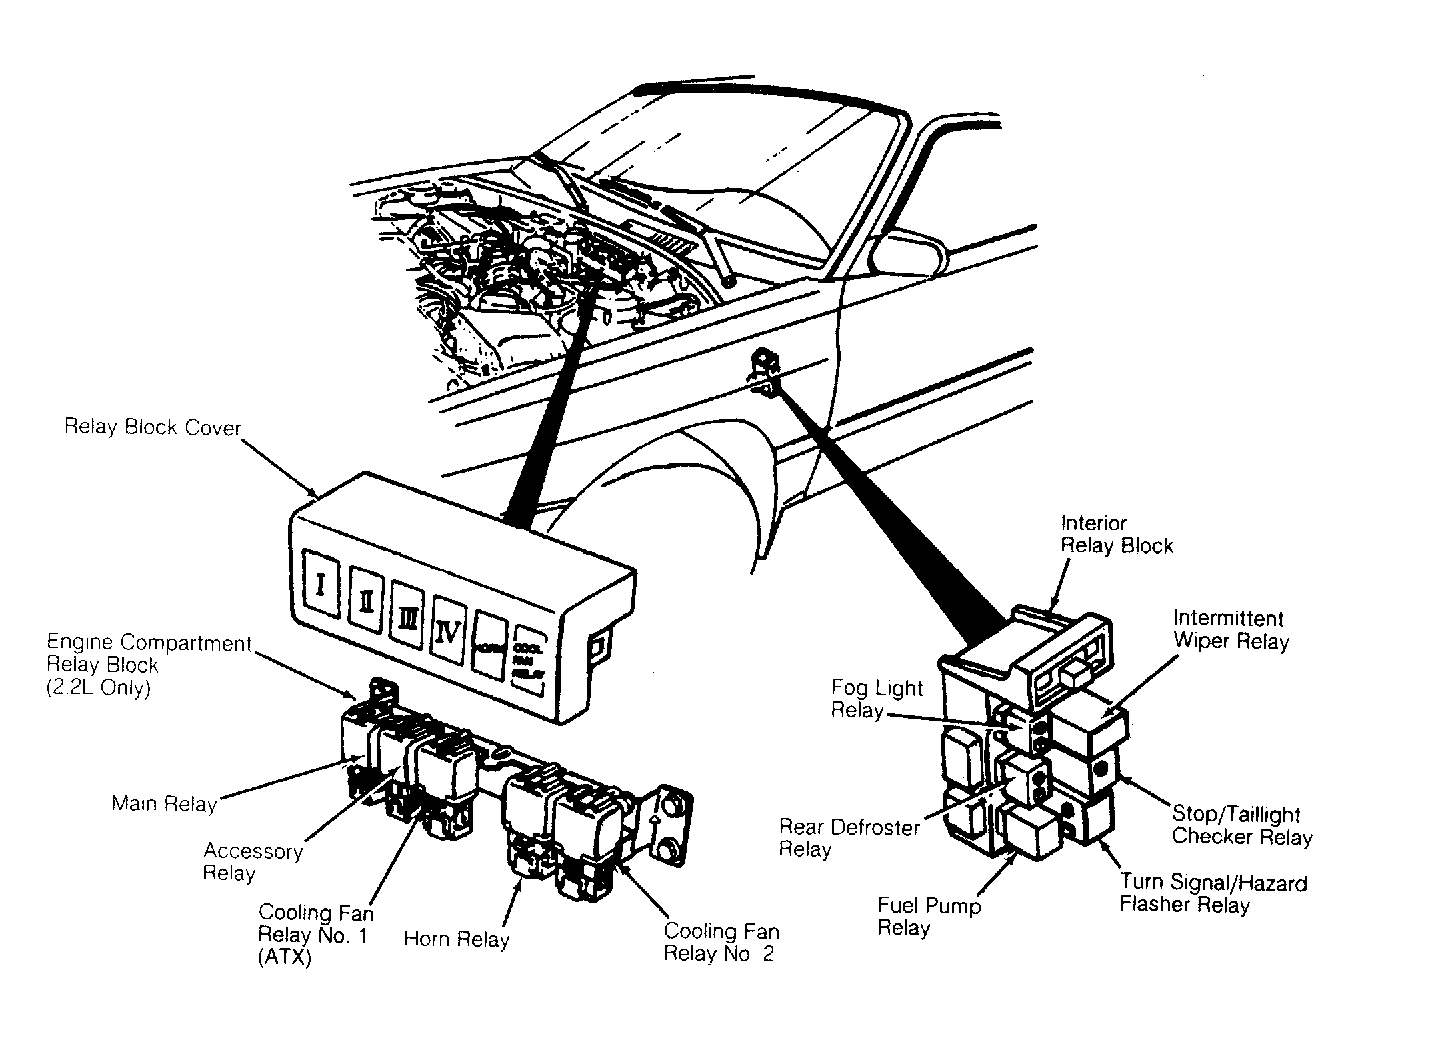 Fuel Pump Relay Location Needed Where Is The Relay